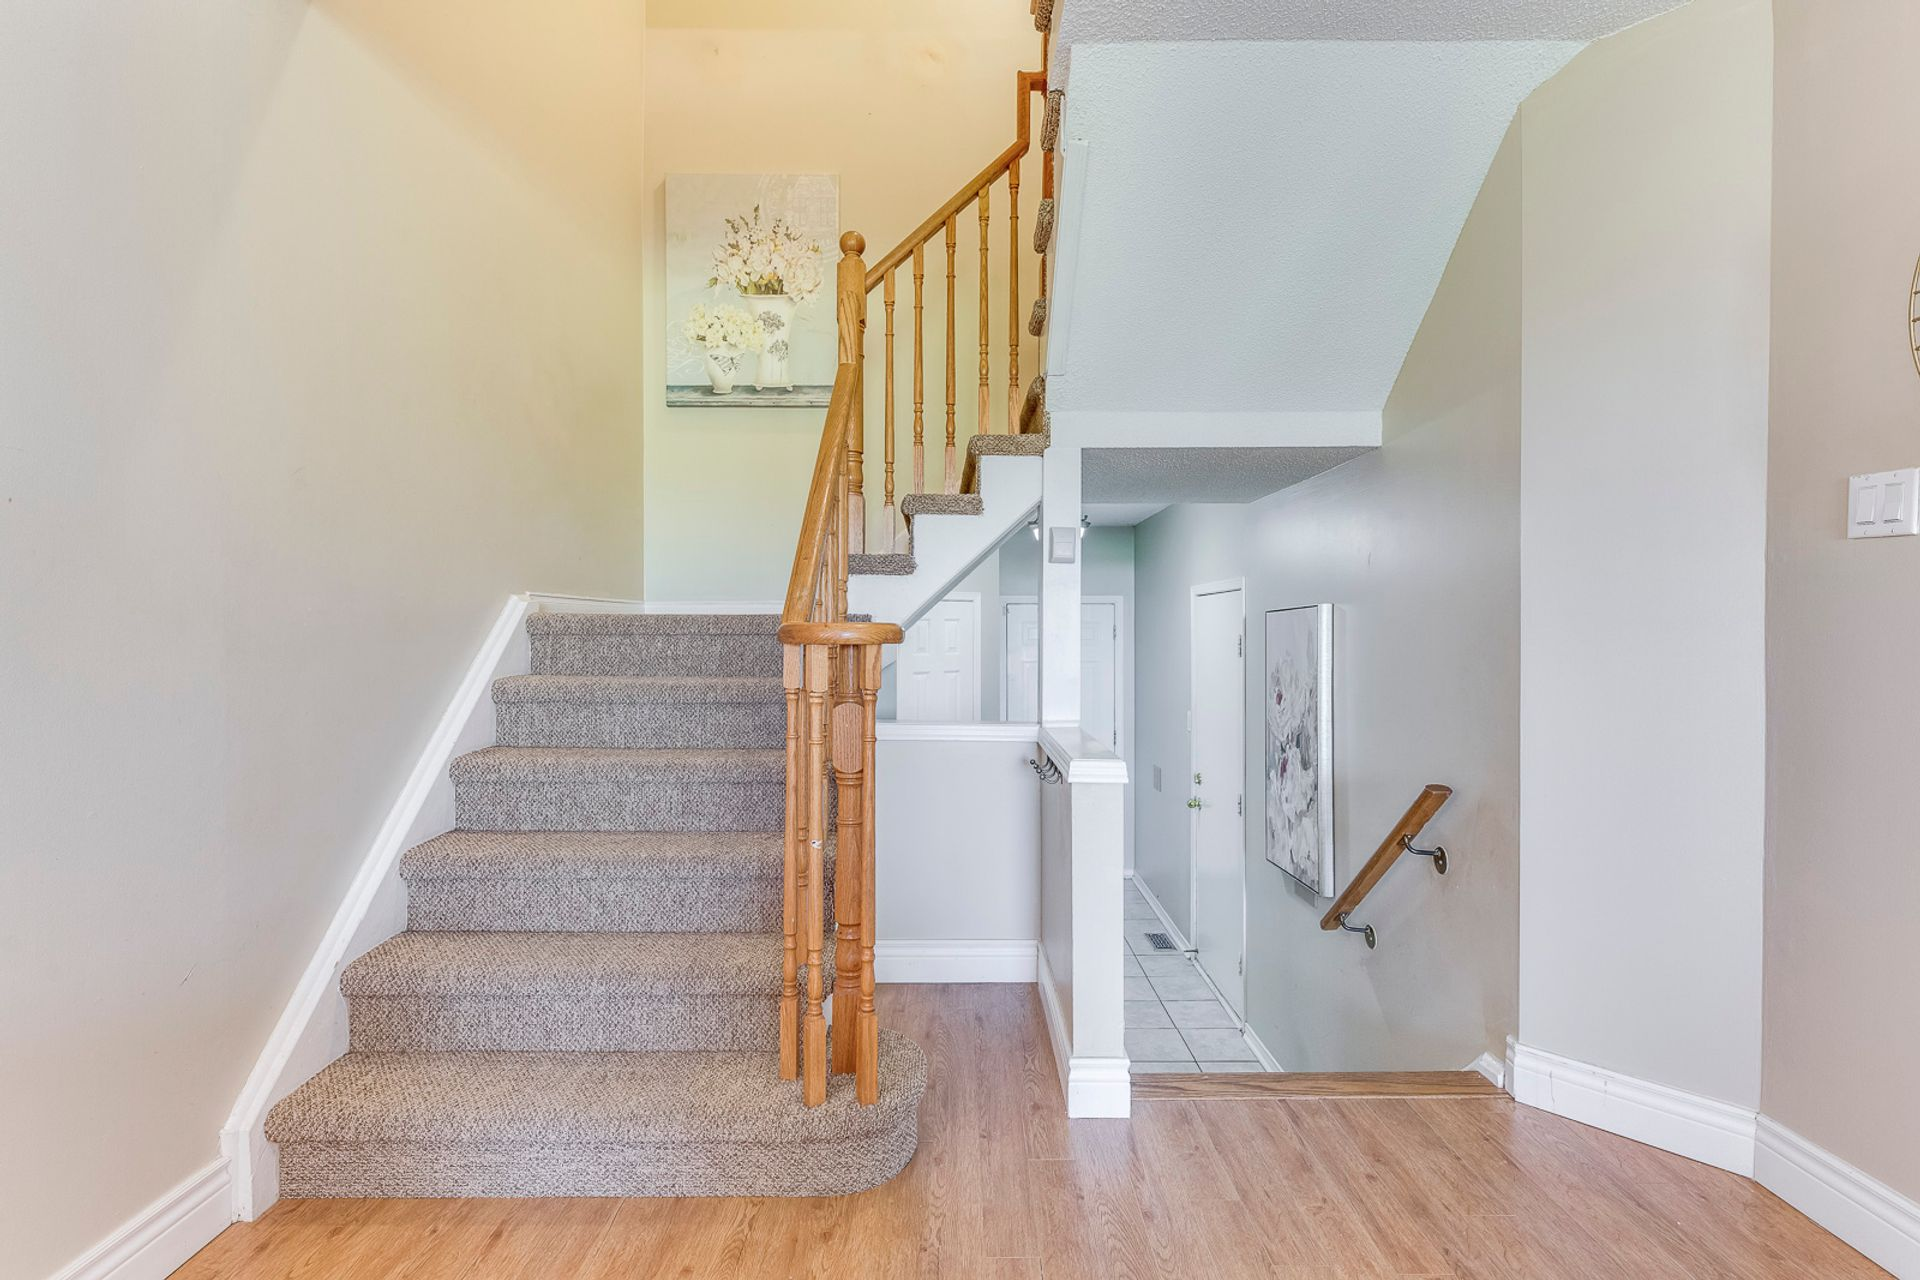 Stairs - 33 - 4605 Donegal Dr, Mississauga - Elite3 & Team at 33 - 4605 Donegal Drive, Erin Mills, Mississauga